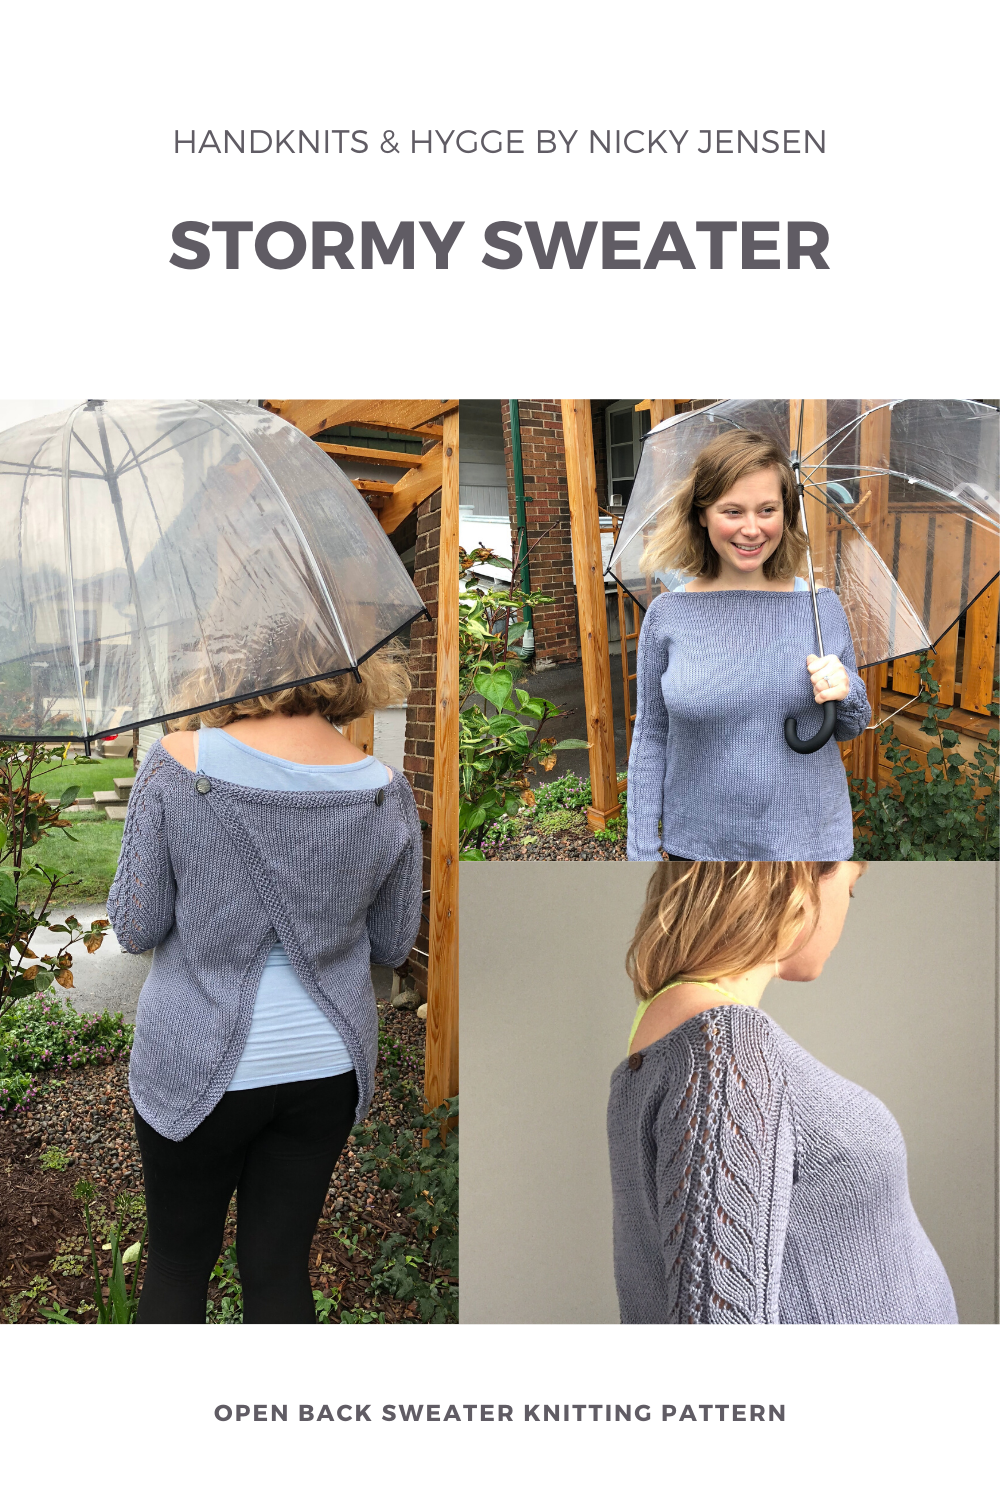 """Handknits & Hygge by Nicky Jensen - Stormy Sweater Open Back Sweater Knitting Pattern"" - Nicky models Stormy, a grey pima cotton raglan with full length lace sleeves and a back that opens diagonally and crosses and buttons at the shoulders"